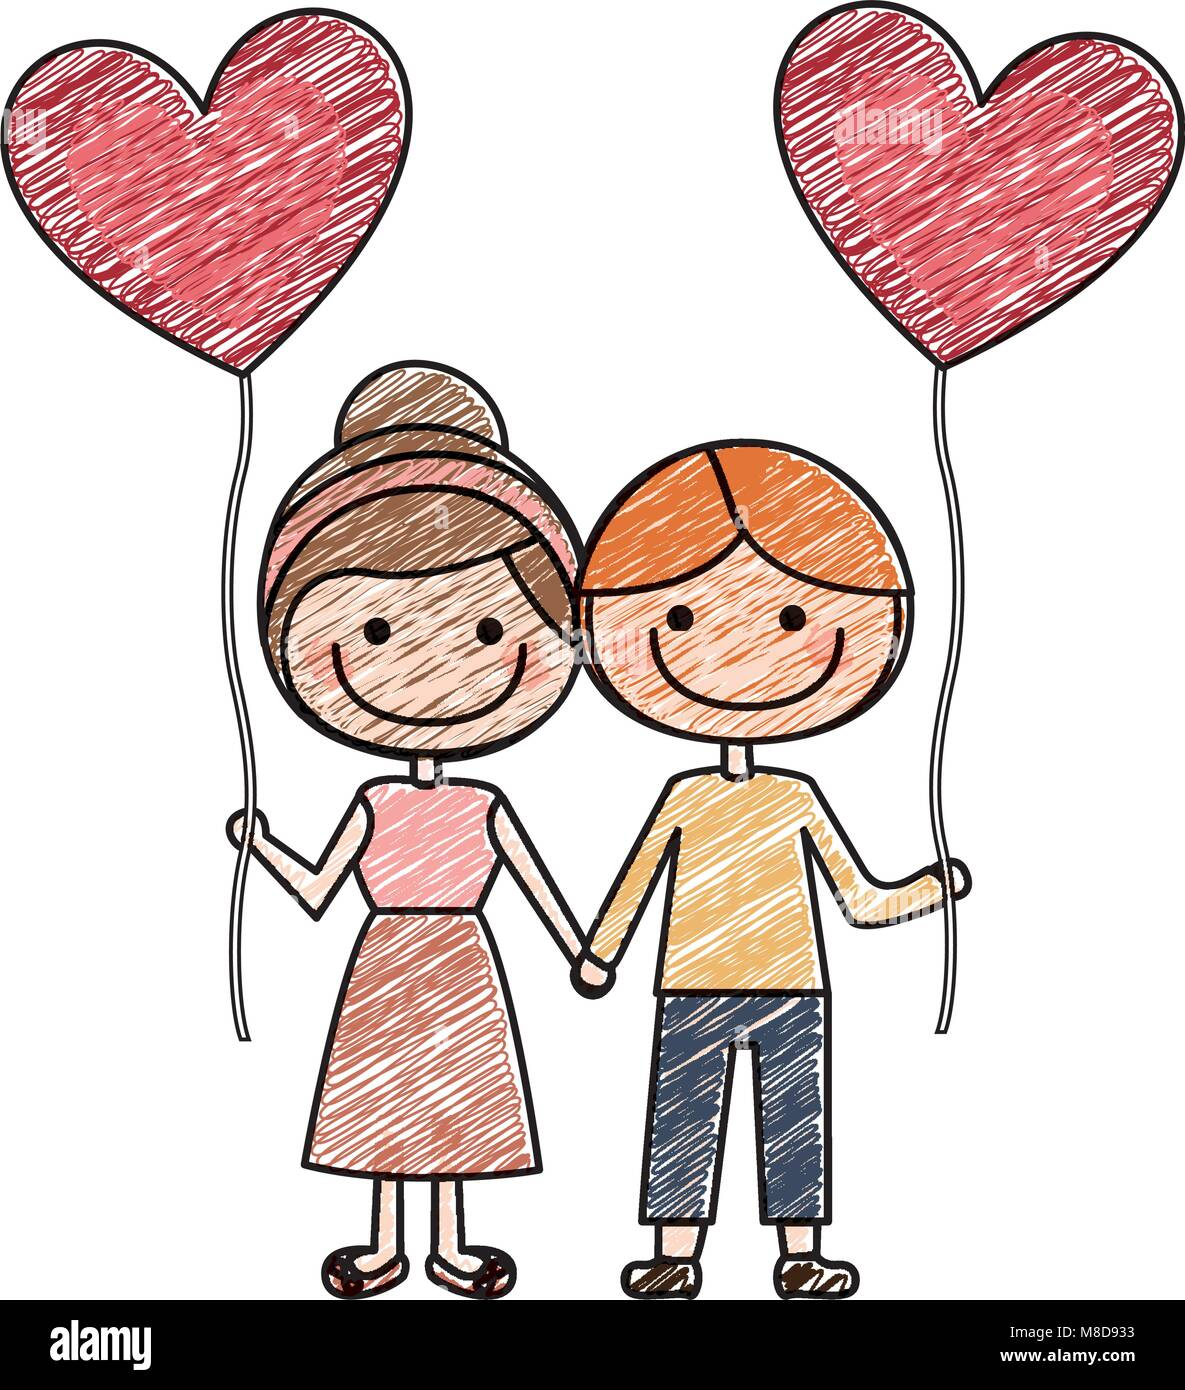 Color Pencil Drawing Of Caricature Of Boy And Girl With Balloon In Stock Vector Image Art Alamy